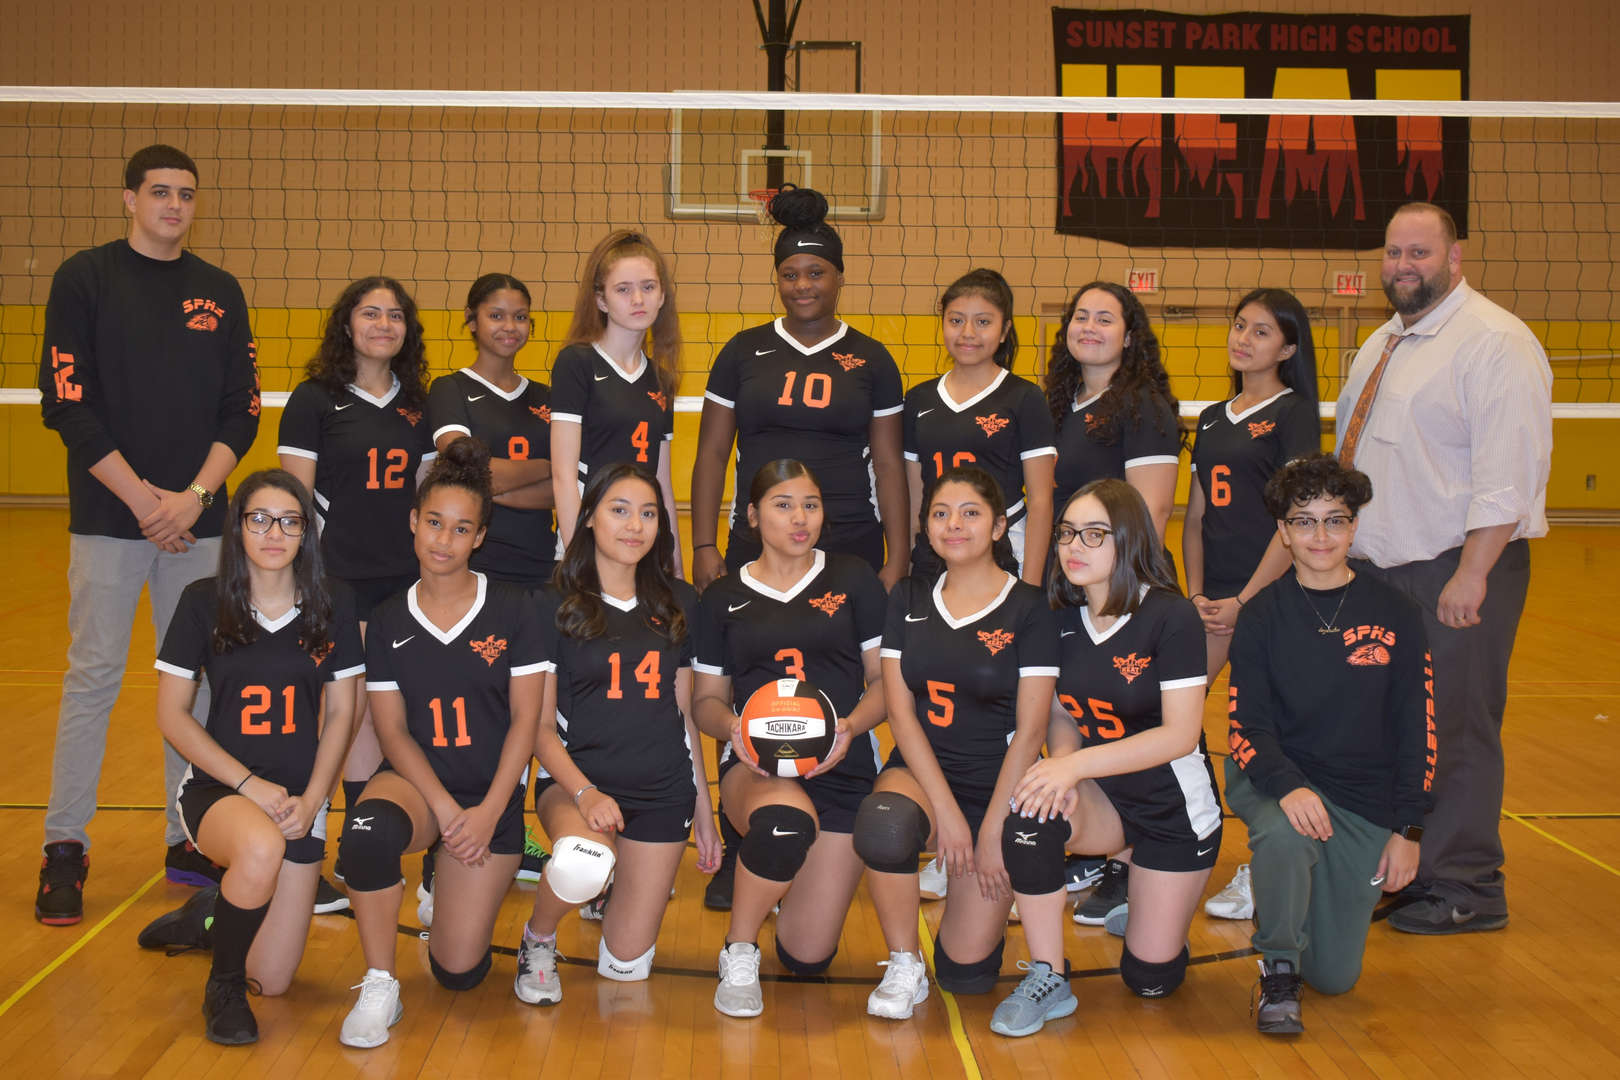 2019-2020 Girls Volleyball Team